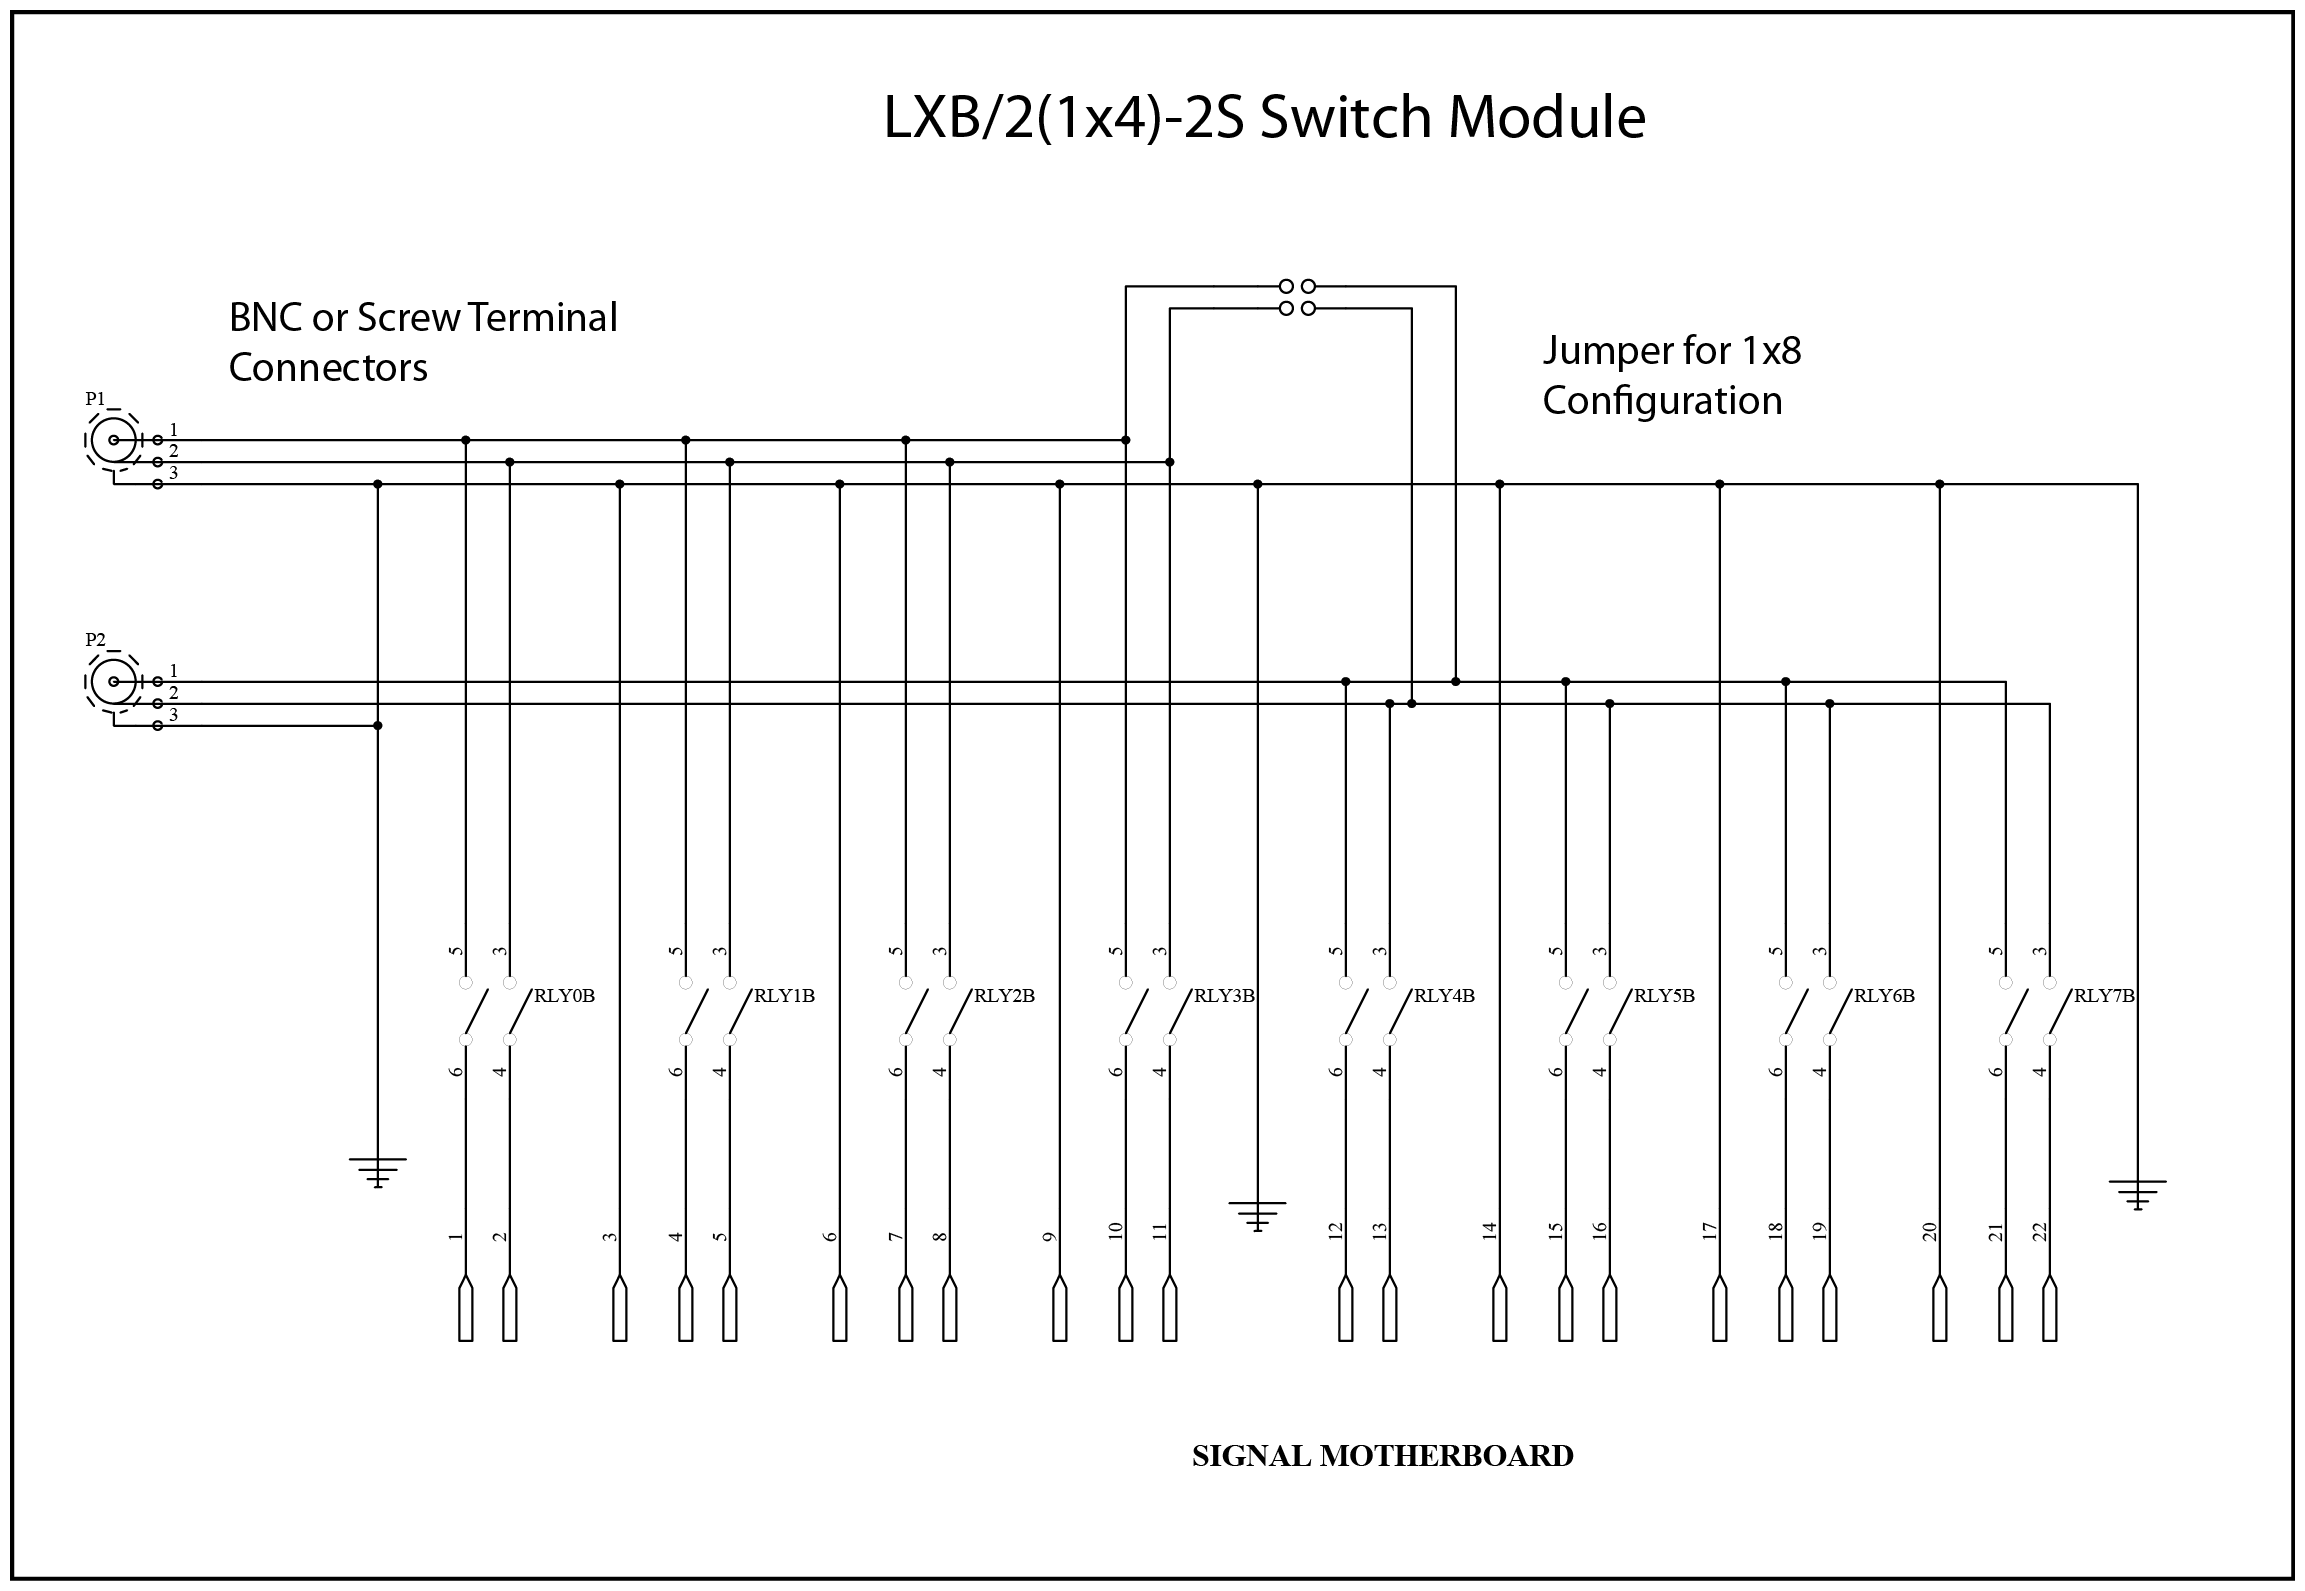 Cytec Lx Series Switching Systems For Automated Test And Data Jump Relay Switch Lx8 21x4 Modules